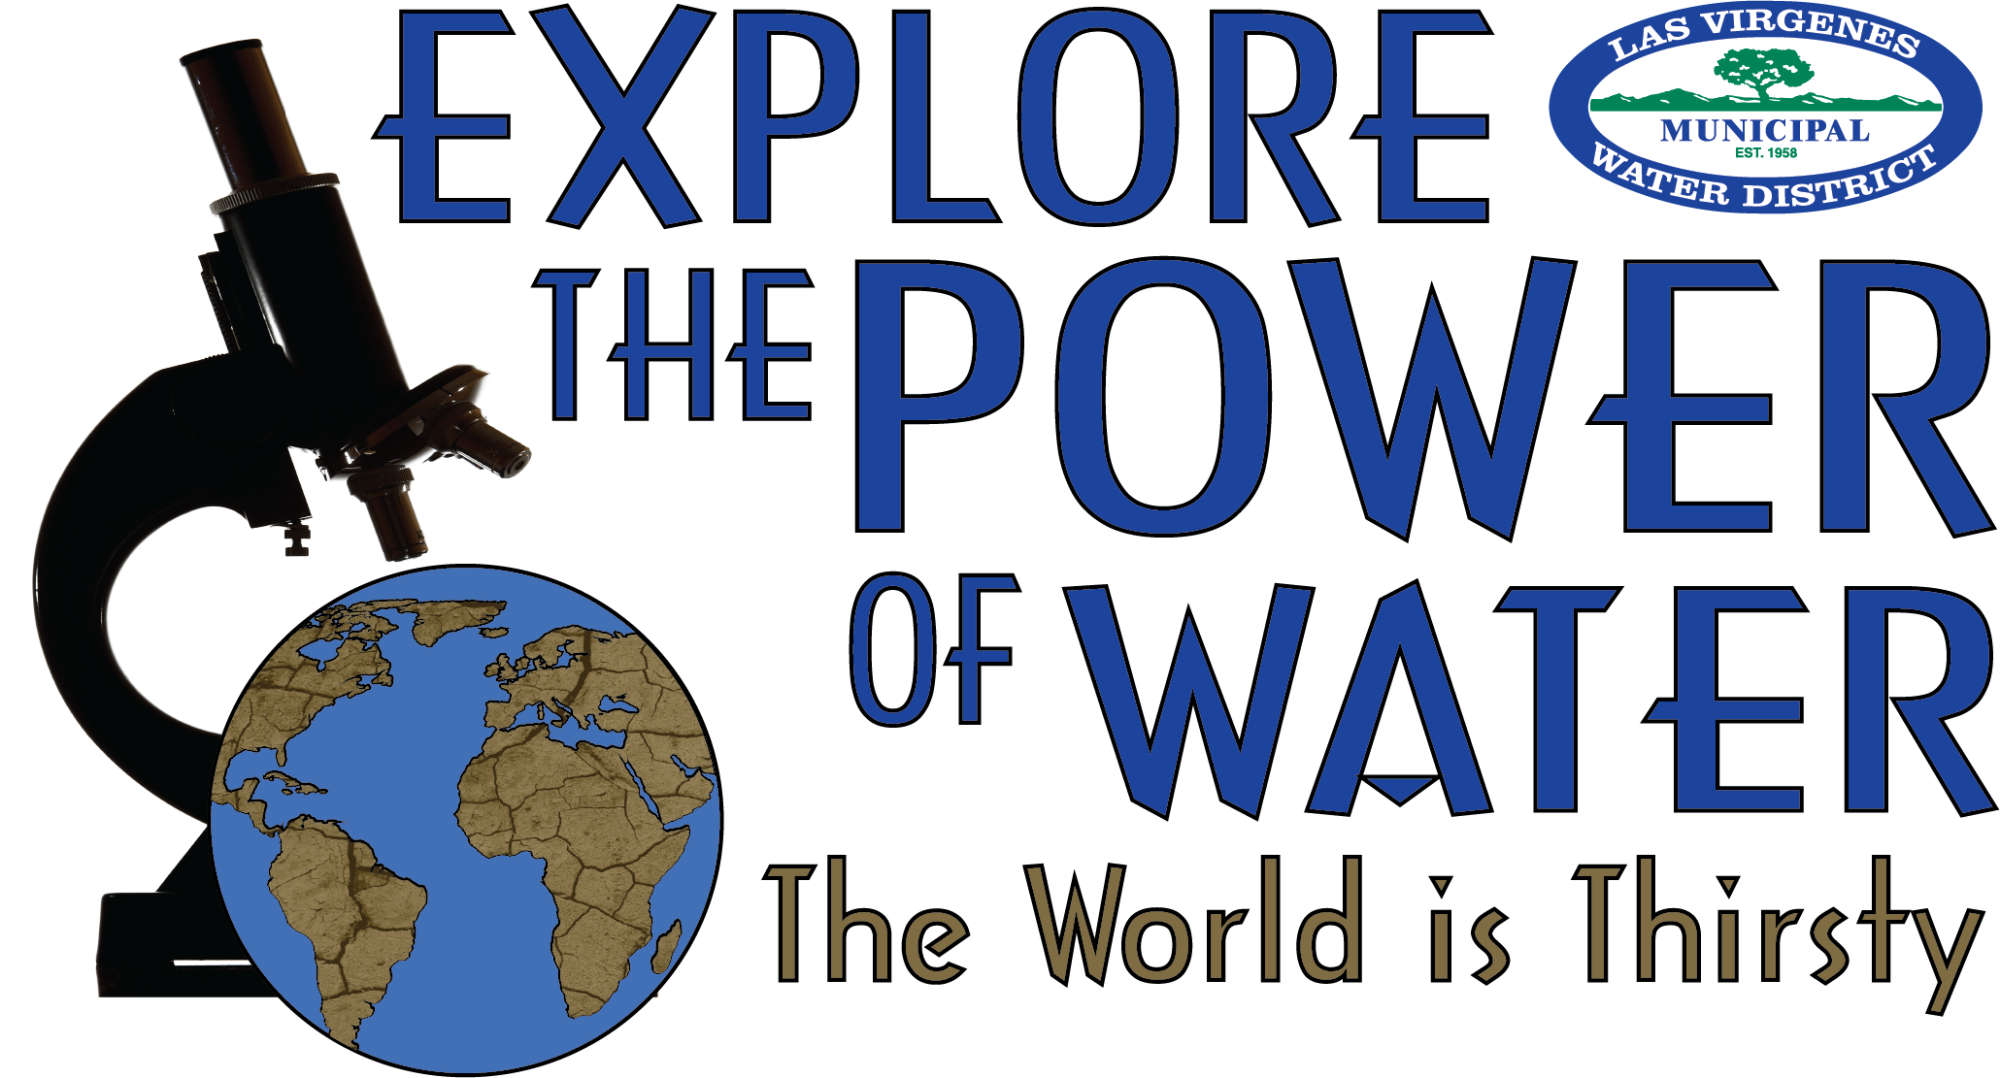 Explore the Power of Water